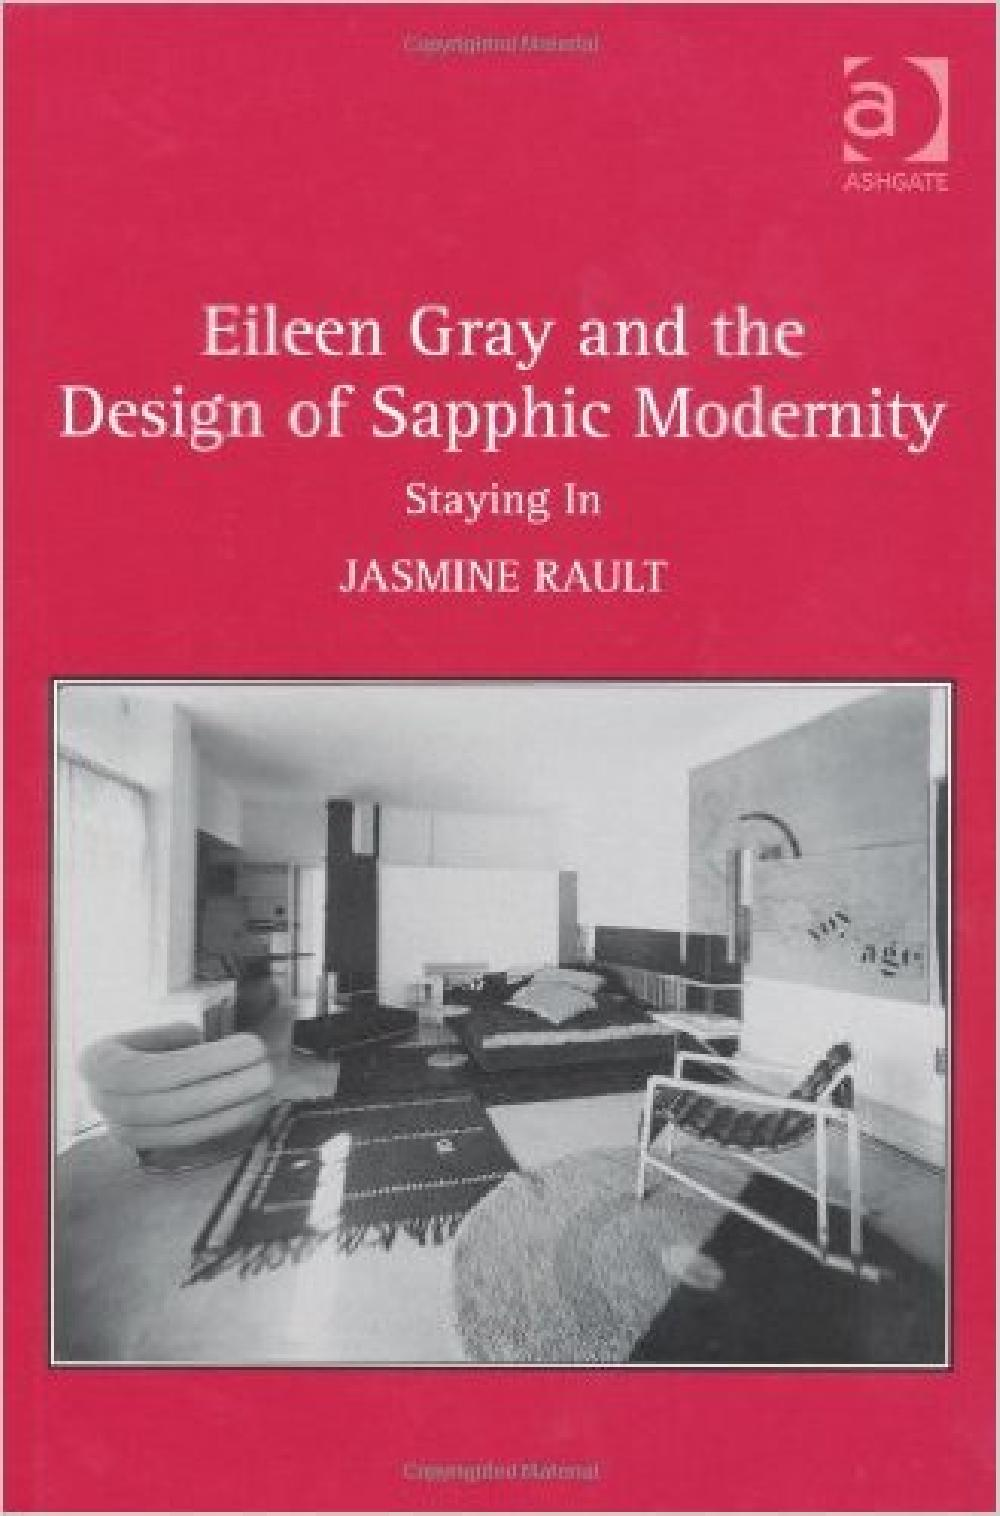 Eileen Gray and the Design of Sapphic Modernity